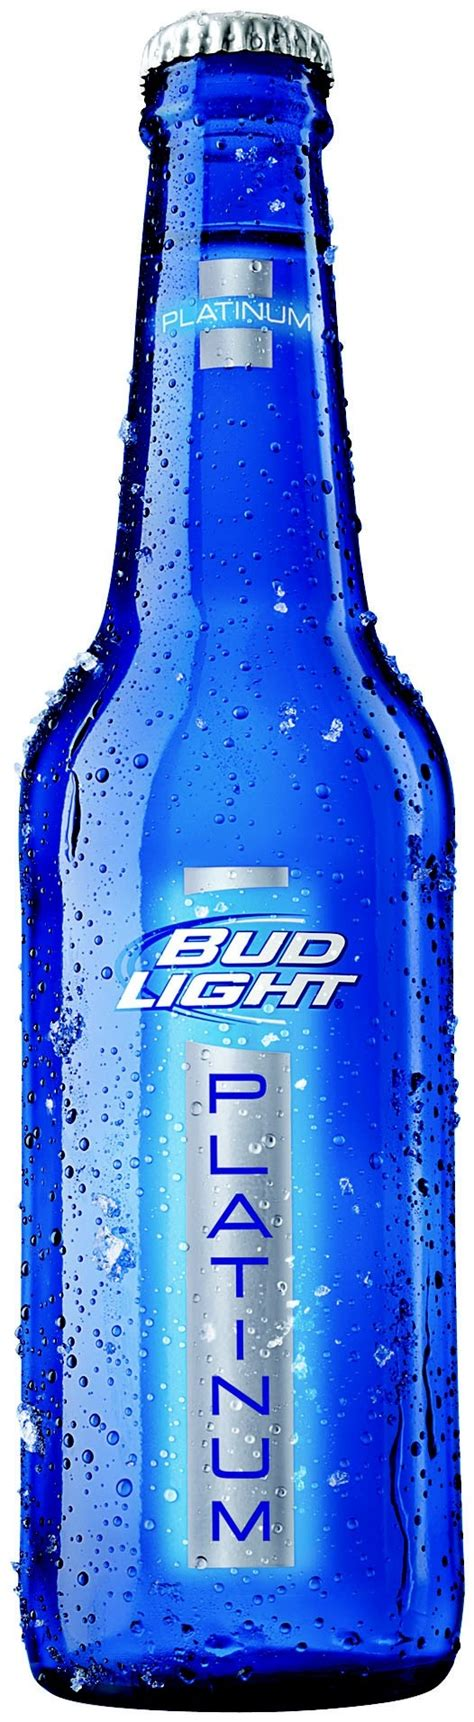 what does bud light taste like 242 best images about beers on pinterest bud light